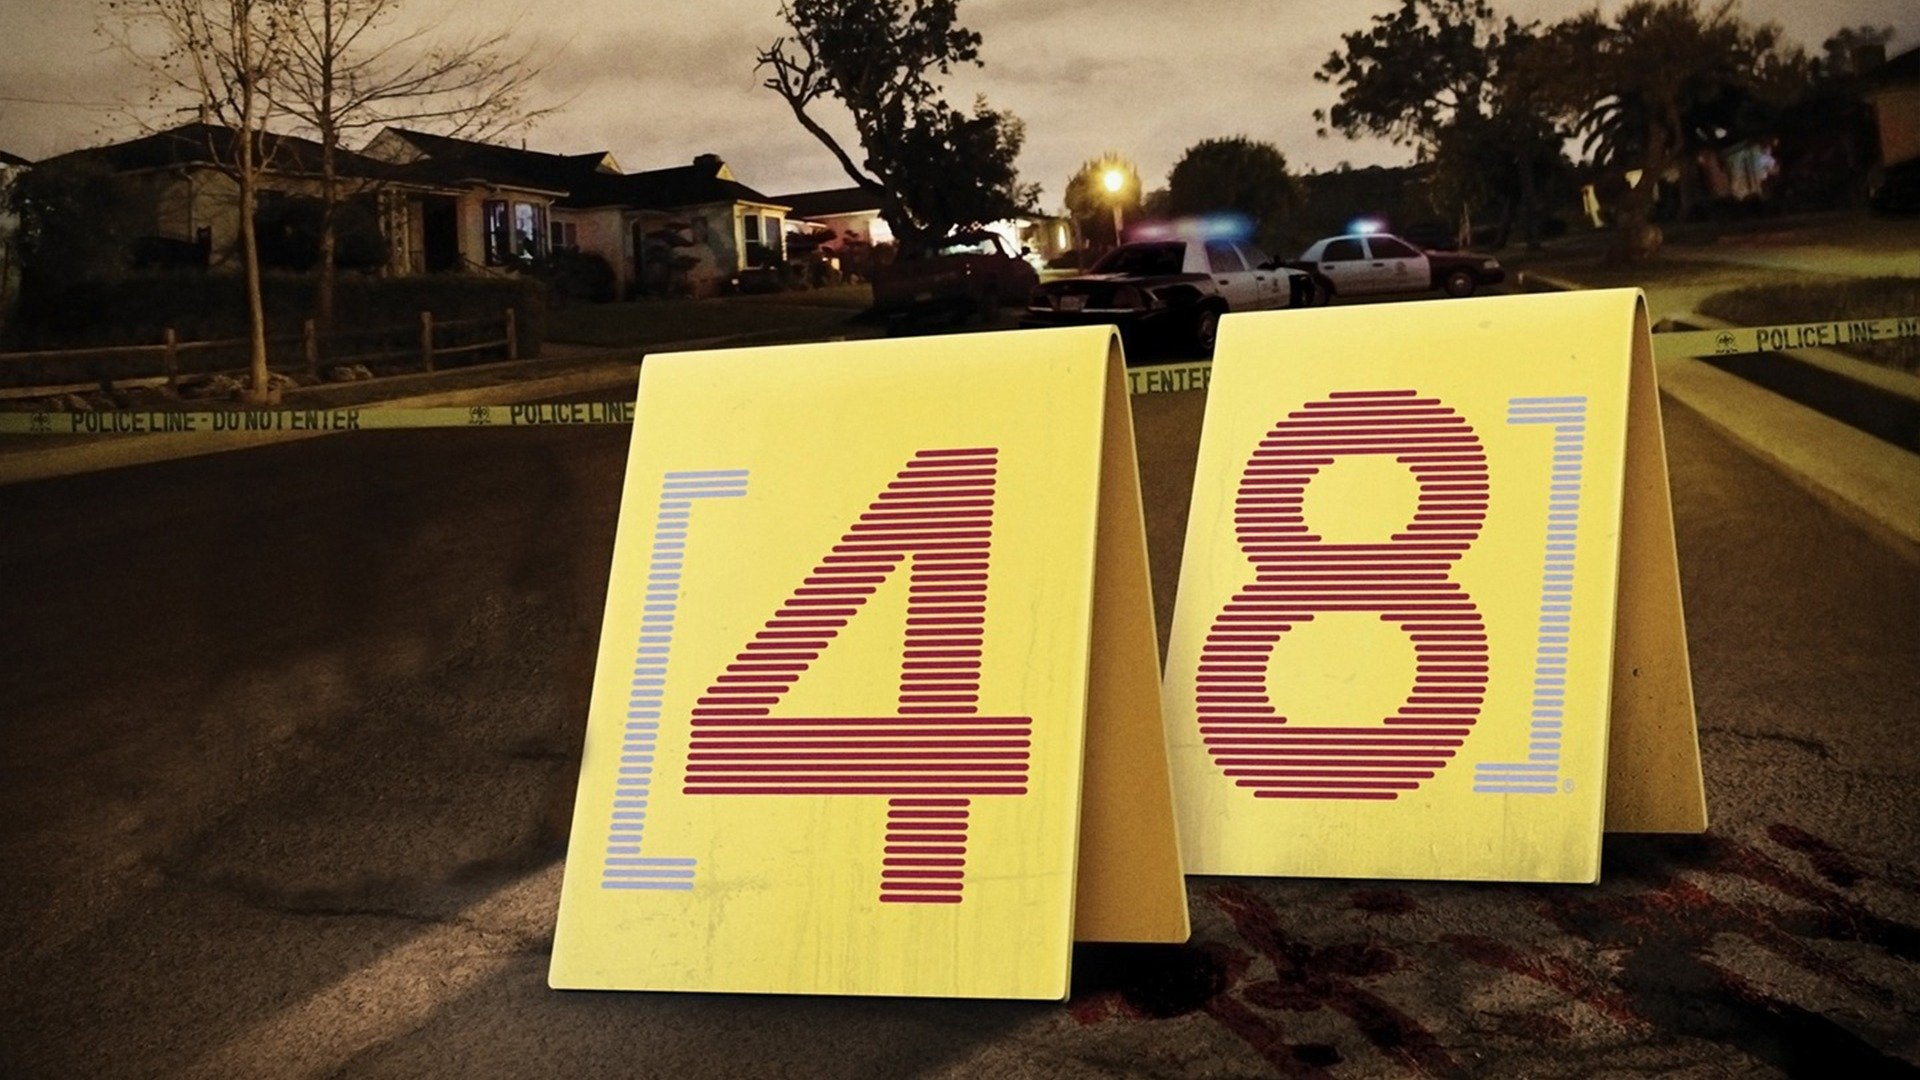 The First 48: Tracking a Killer